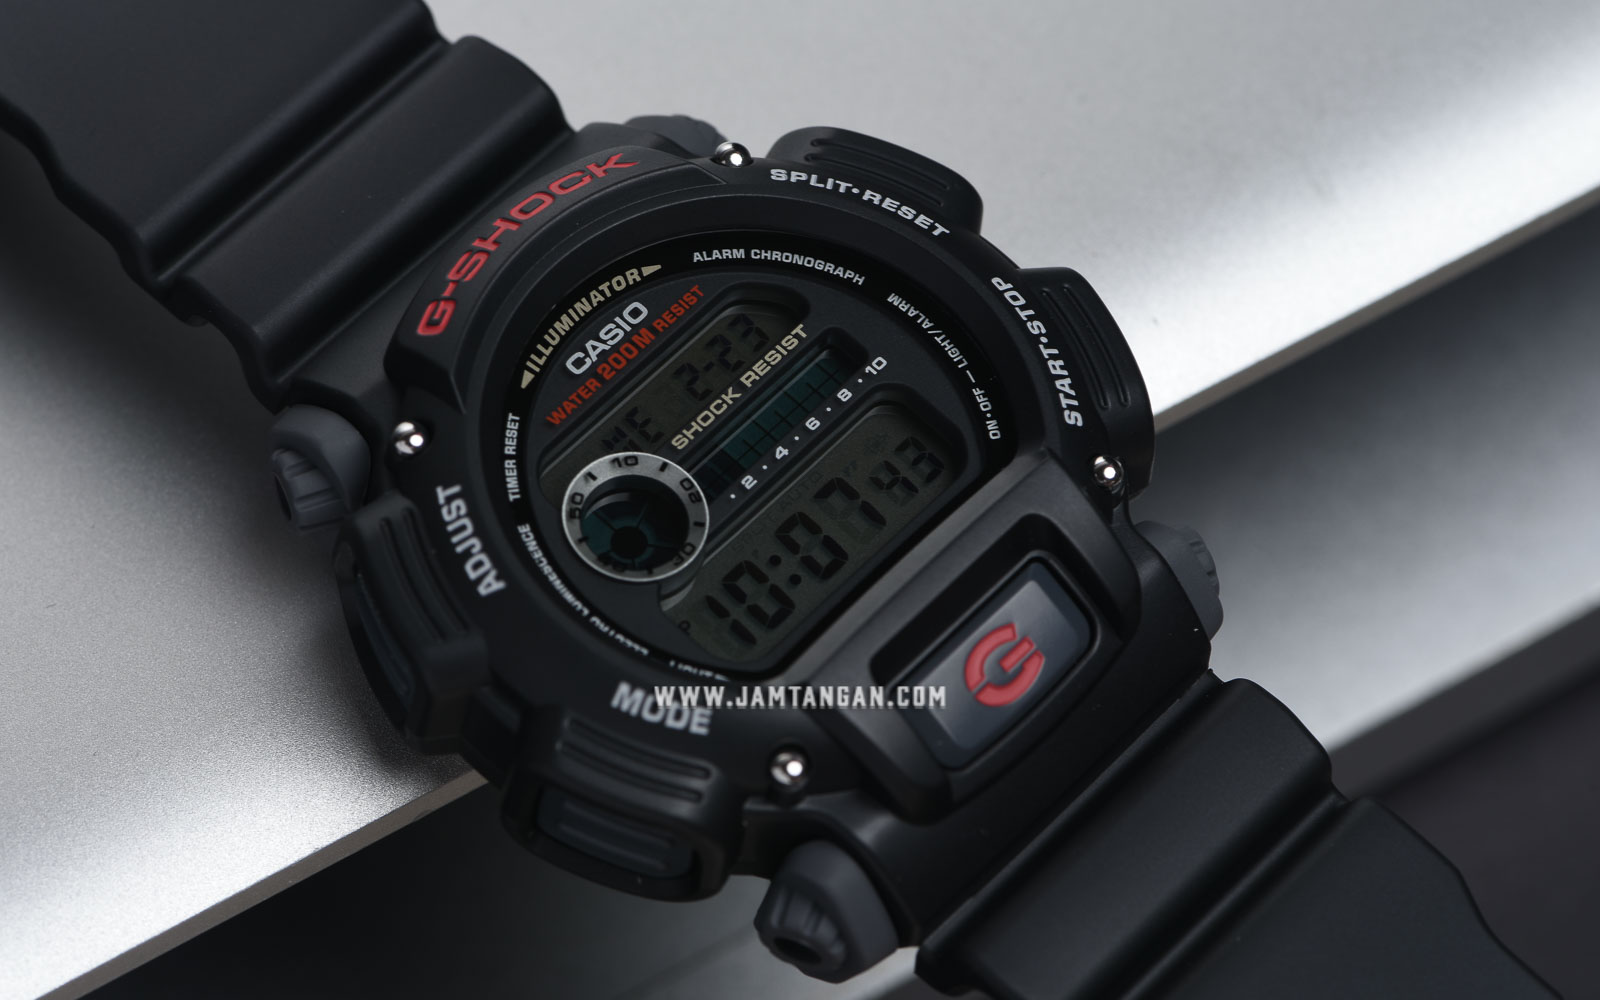 Casio G-Shock DW-9052-1VDR Digital Dial Black Resin Strap Machtwatch